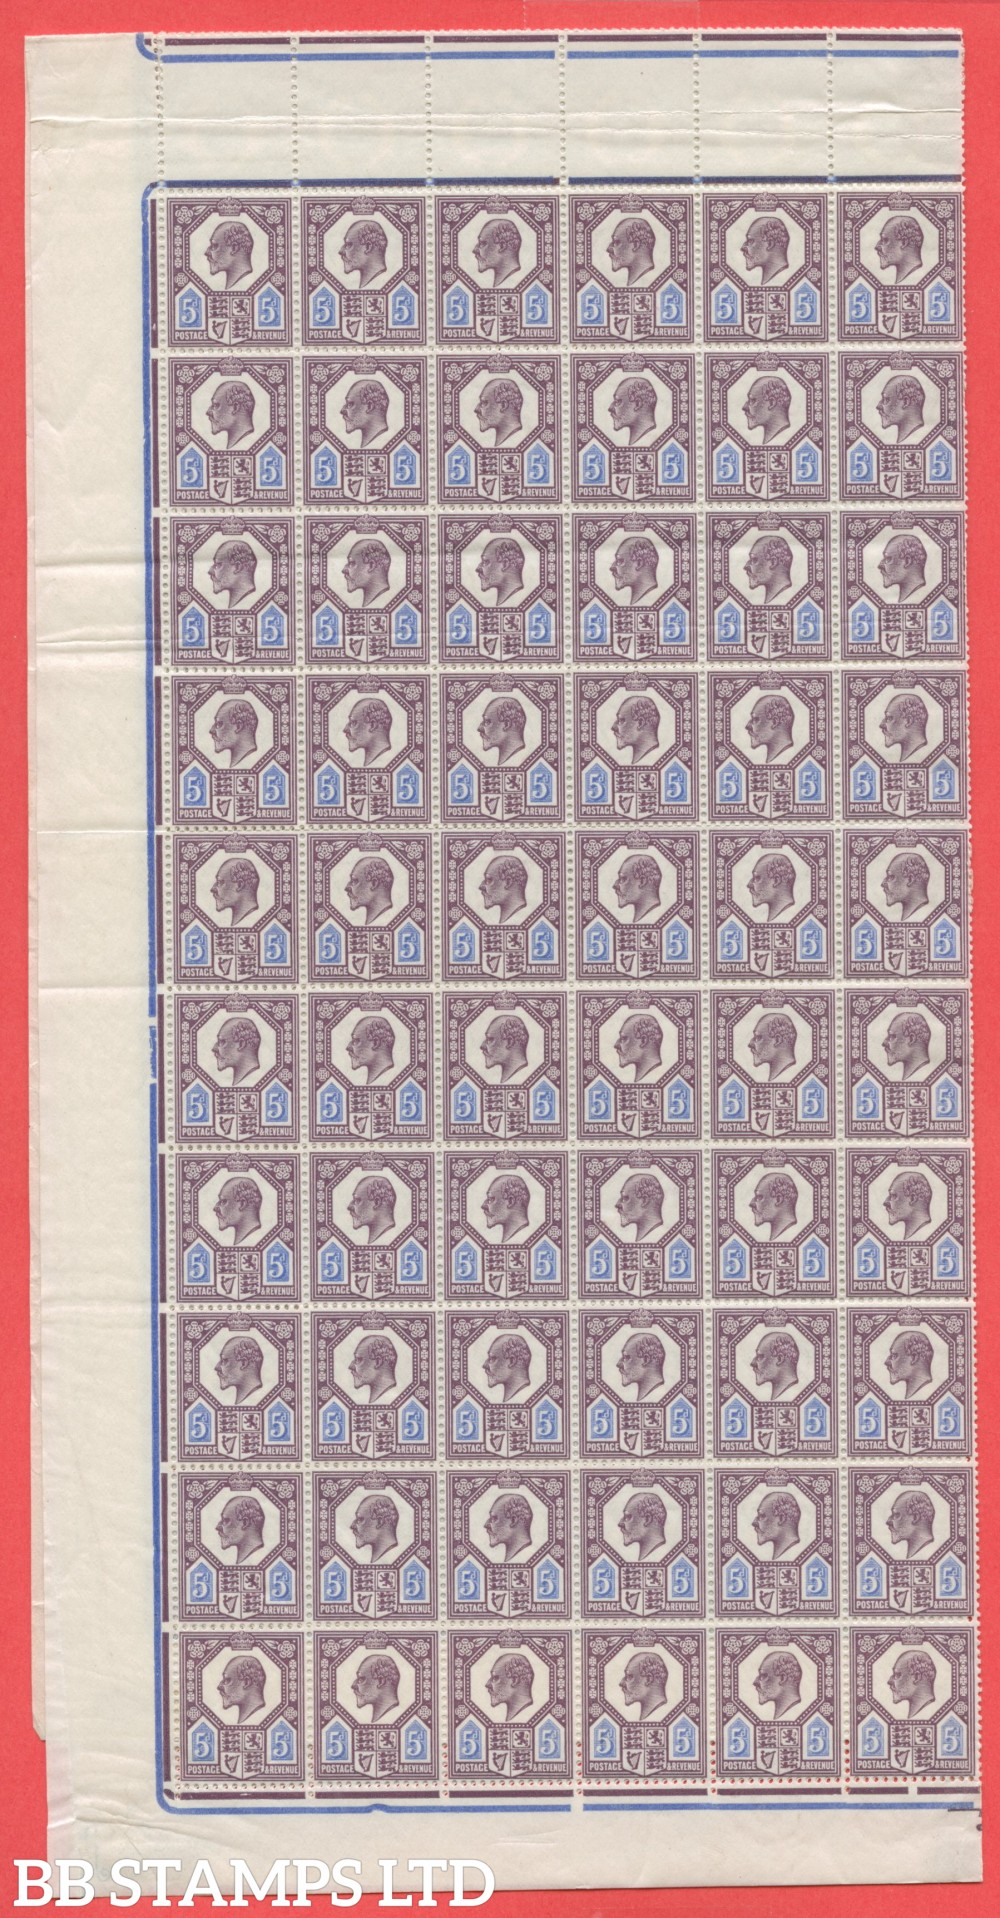 SG. 294 M30 (3) 5d Deep Dull Reddish Purple & Bright Blue. A fine COMPLETE SHEET OF 240. The odd crease as to be expected but VERY RARE to see these days.